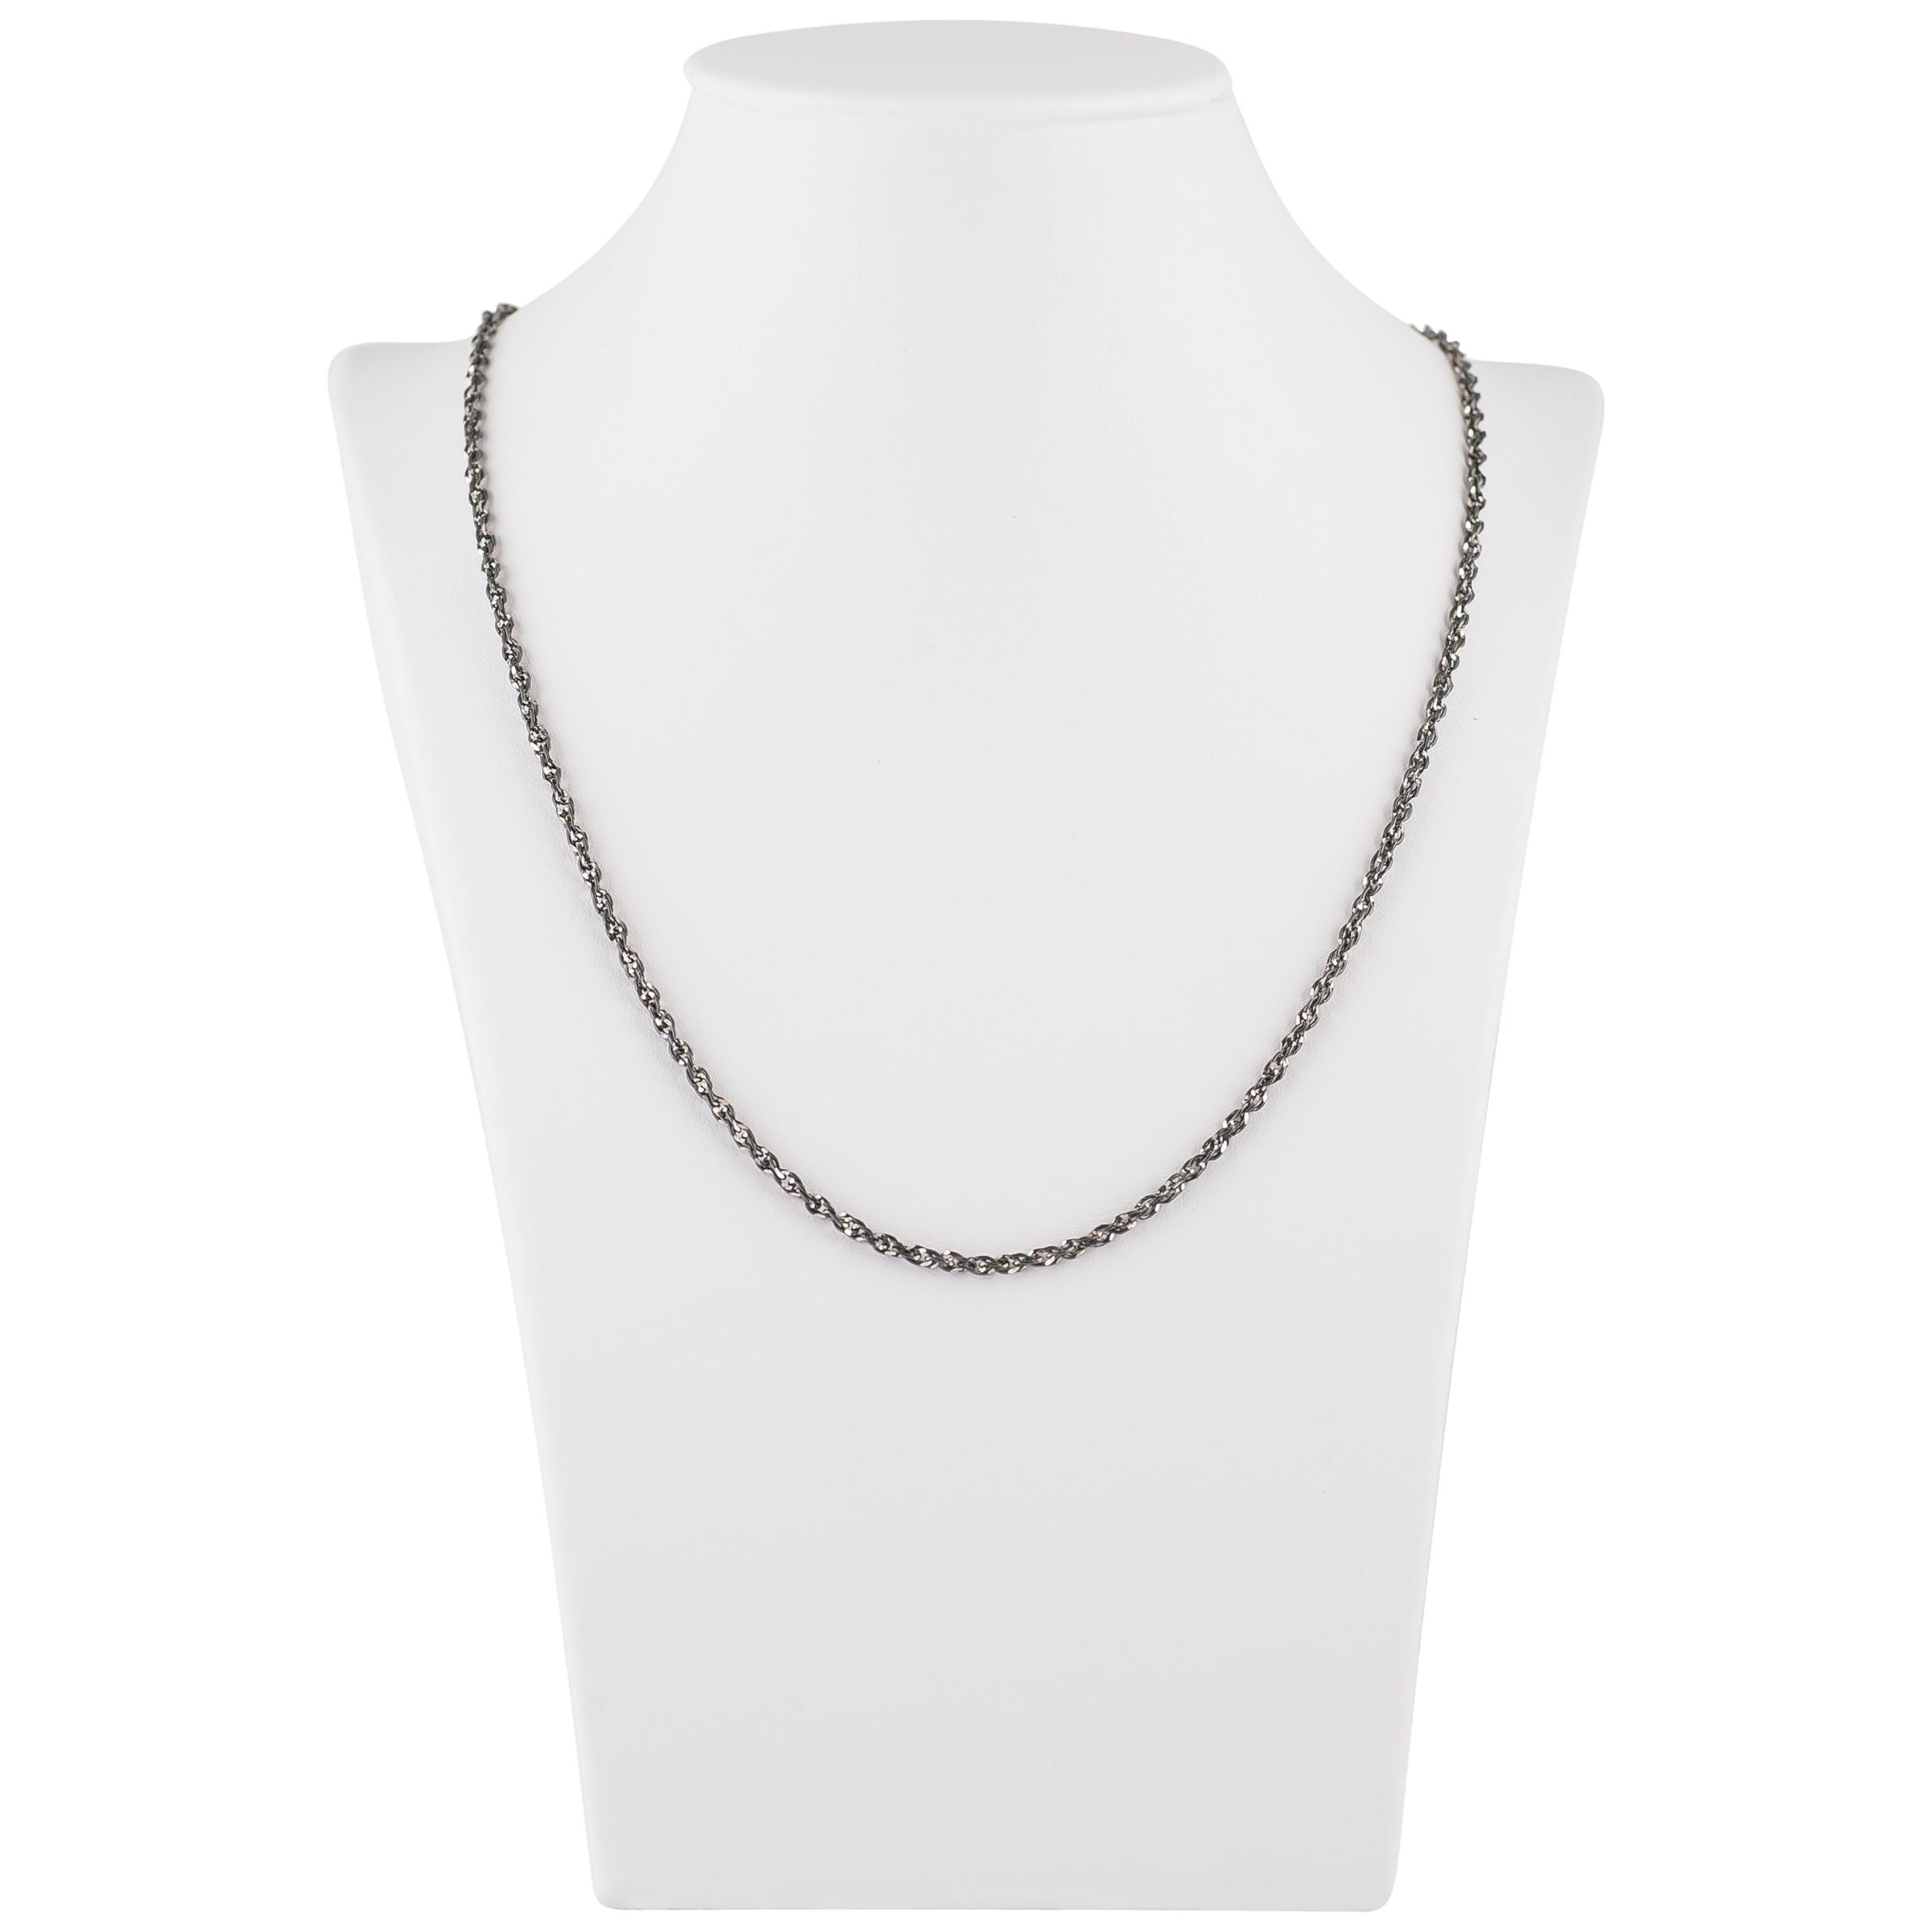 Be-Jewelled Be-Jewelled Singapore Oxidised Sterling Silver Diamond Cut Rope Chain Necklace, Silver